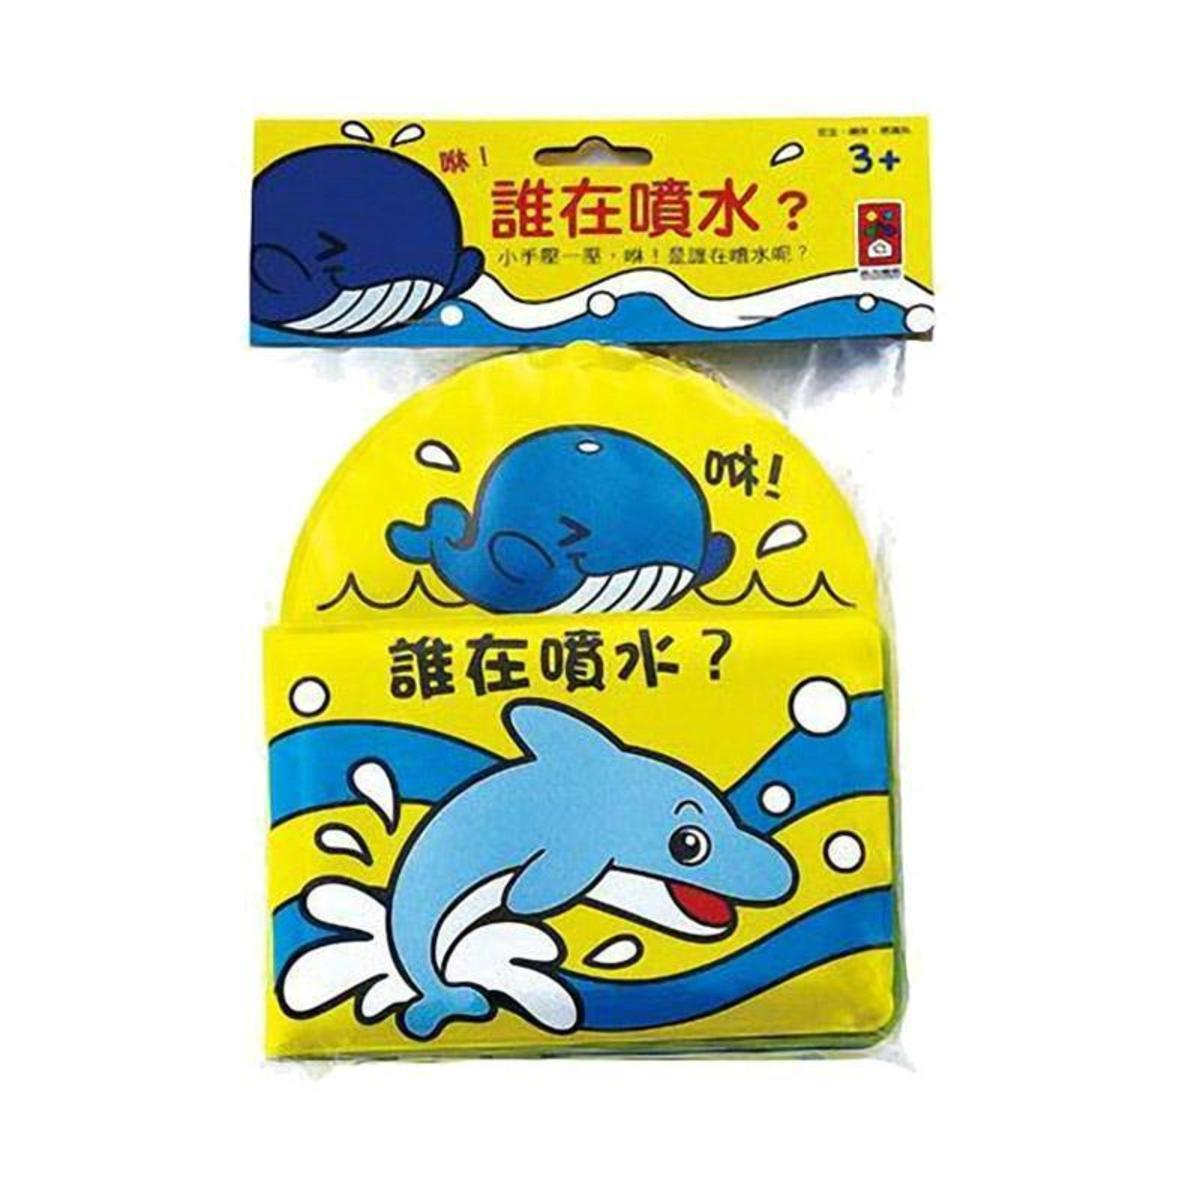 Publishing Children's Bath Book - Hey! Who is spraying water? Taiwan import